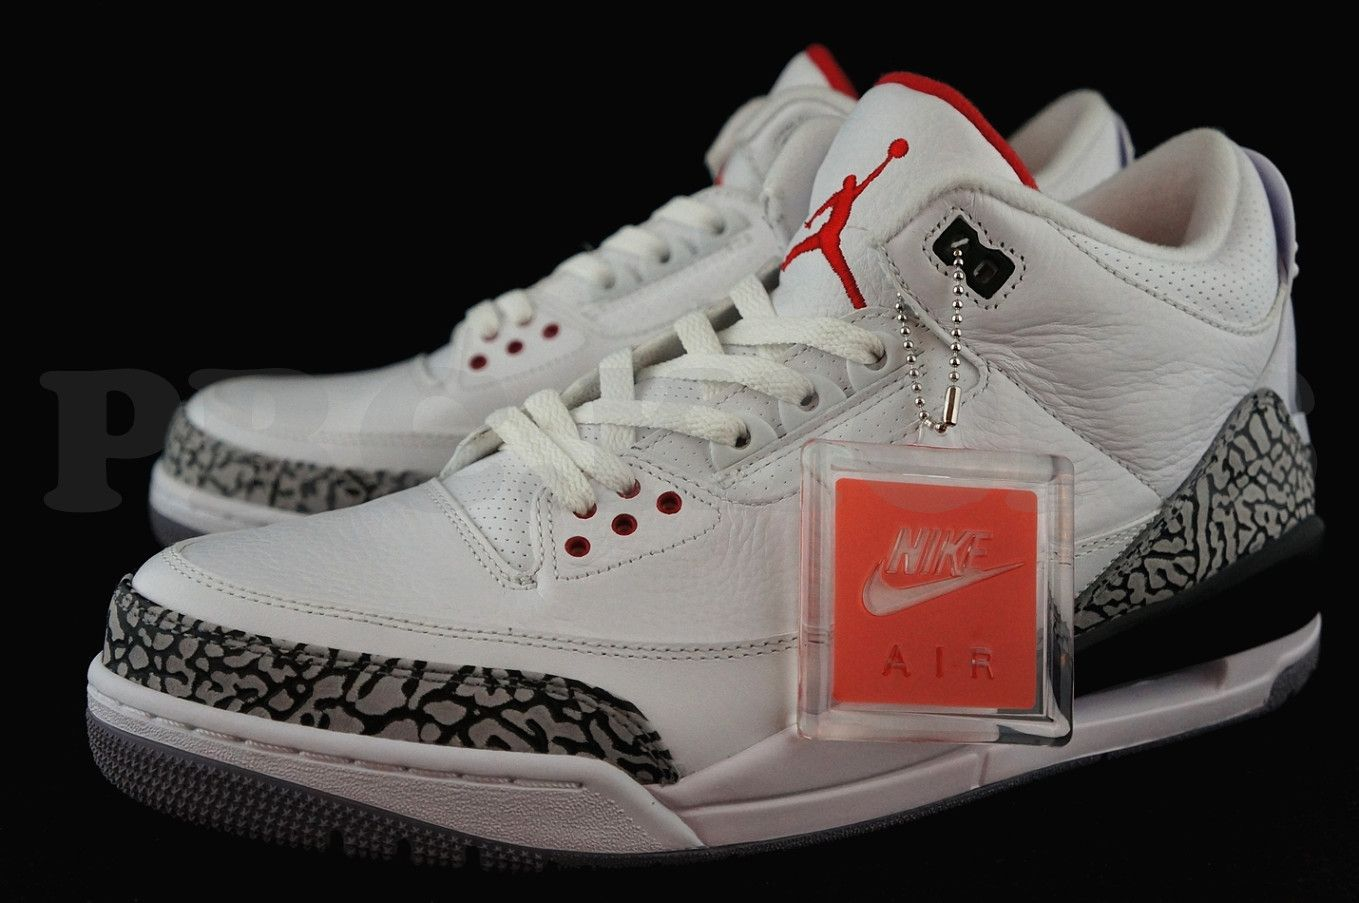 Coolest Timesneakerssneakerheadsshoes Of Nba 50 Sneakers All sdthQrCx